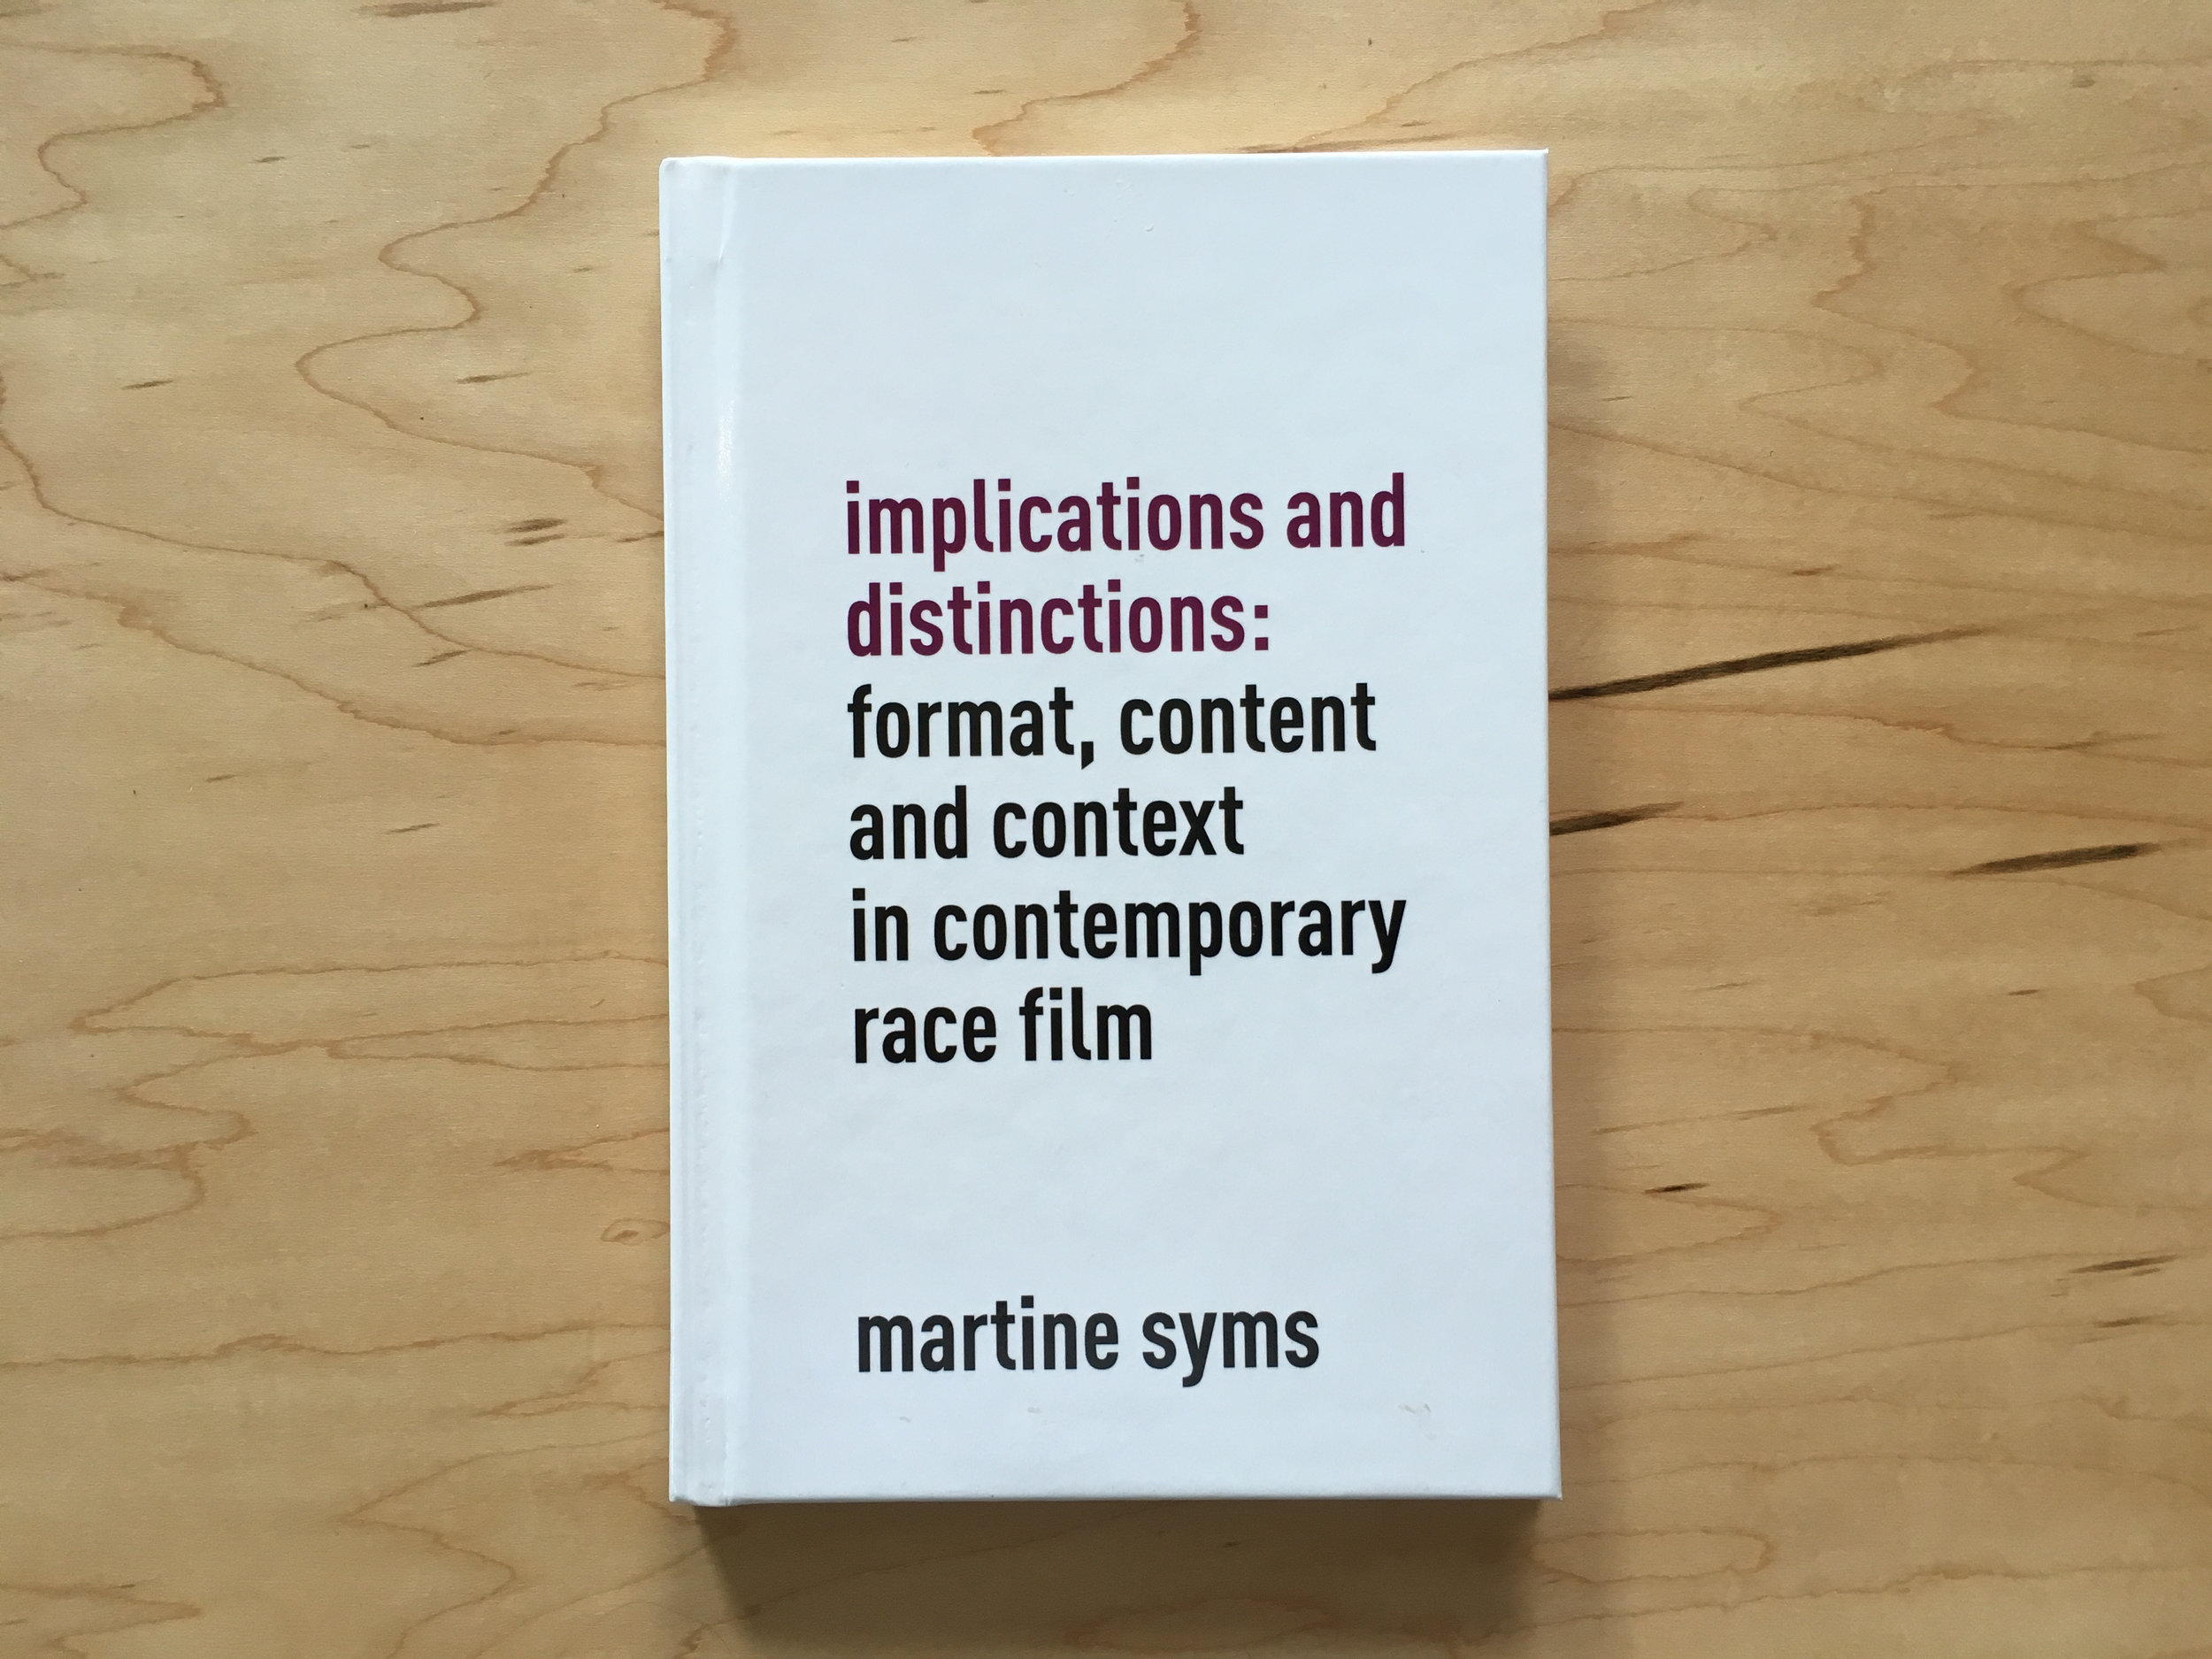 Cover: Martine Syms,  Implications and Distinctions: Format, Content and Context in Contemporary Race Film  (Houston: Future Plan and Program, 2011).